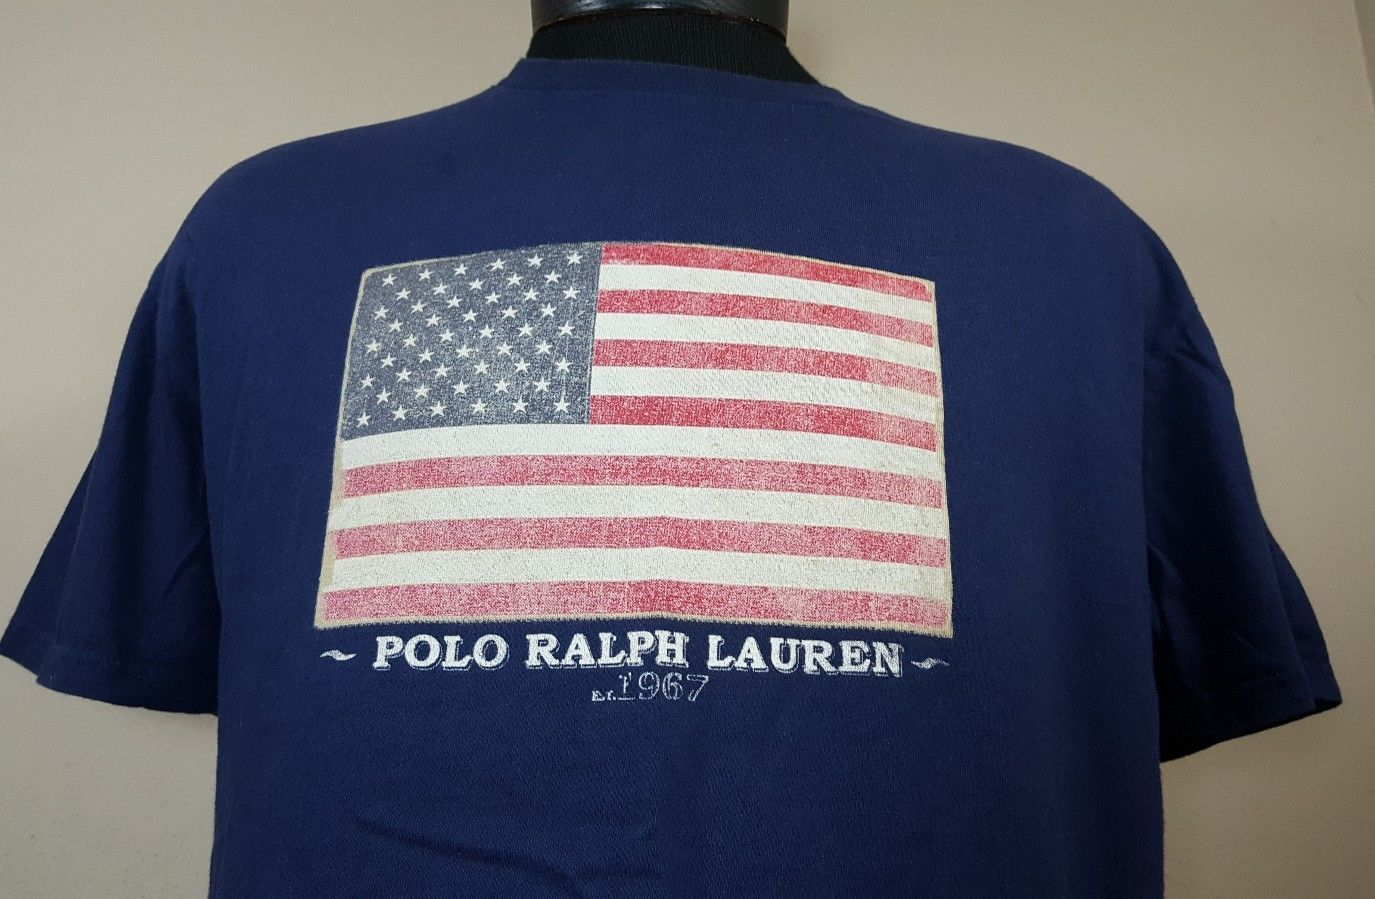 13711618e S l1600. S l1600. Previous. VTG Polo Ralph Lauren T Shirt Medium Spell Out  90's Flag Sport Bear Stadium